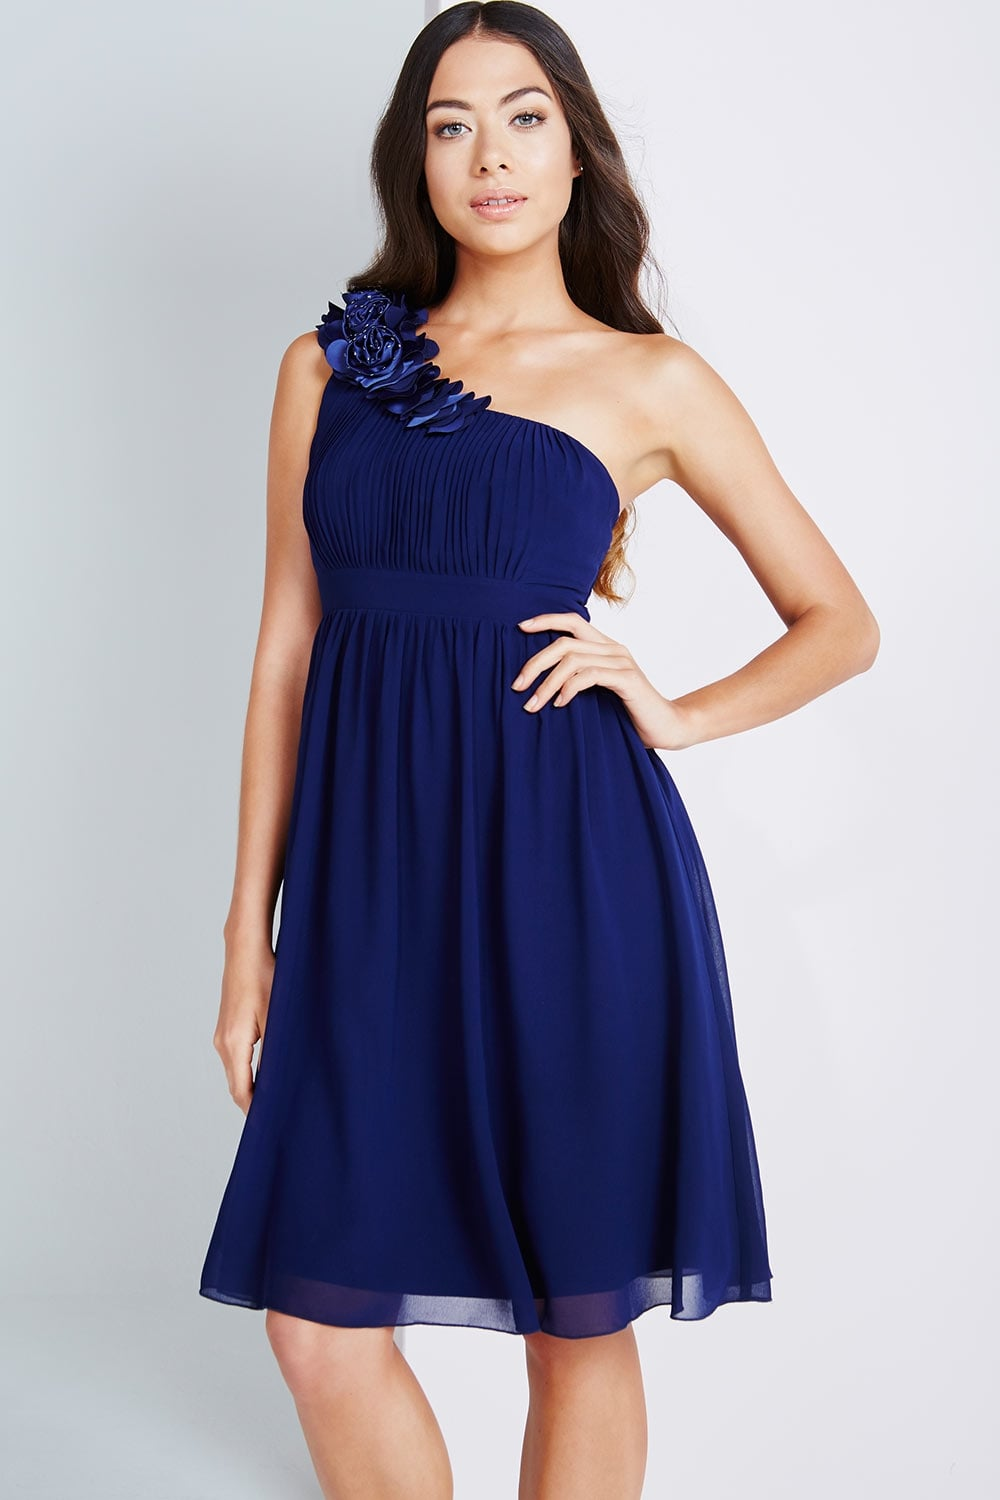 c7245fe832c Little Mistress Navy One Shoulder Corsage Prom Dress - Little ...